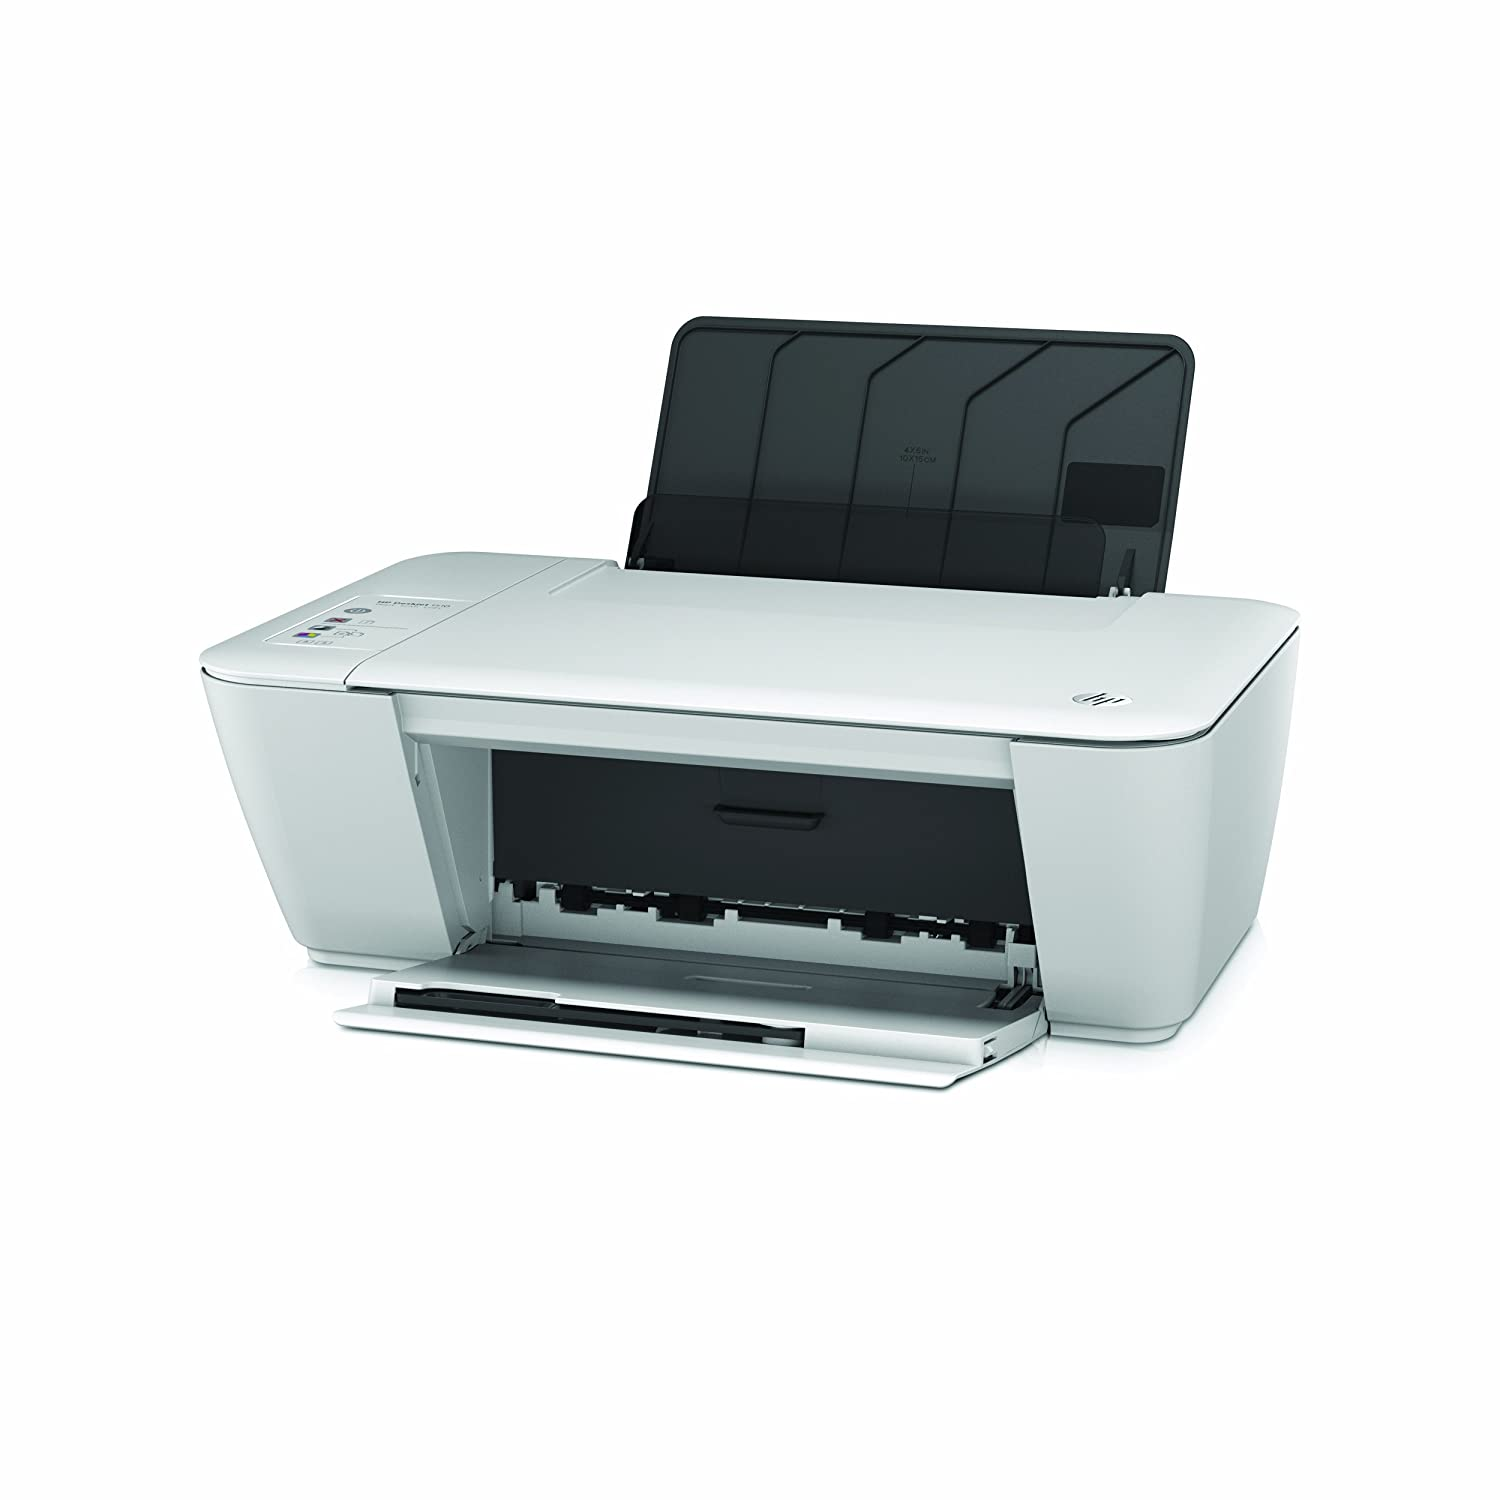 Hp printer drivers for windows 8 deskjet 1050 - Hp Deskjet 1510 All In One Printer With Start Up Inks Grey Amazon Co Uk Computers Accessories